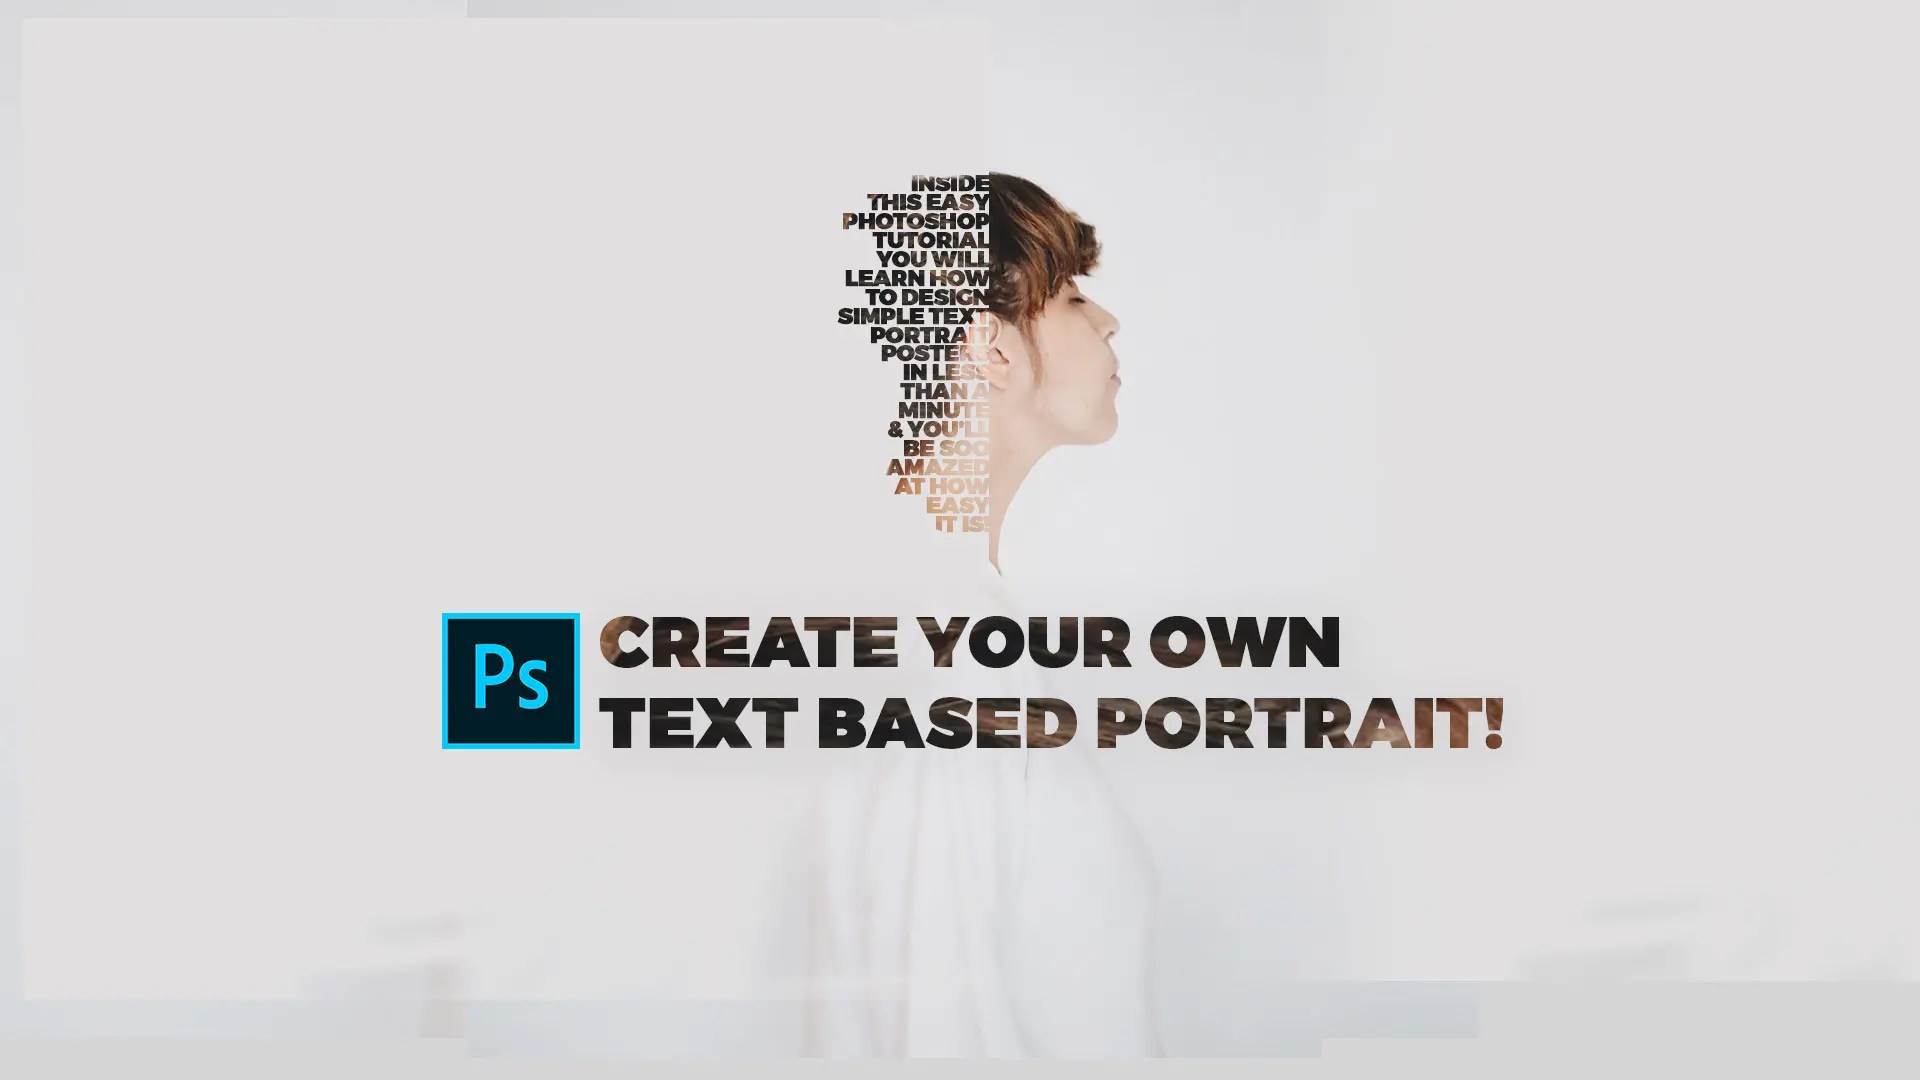 photoshop text poster design archives